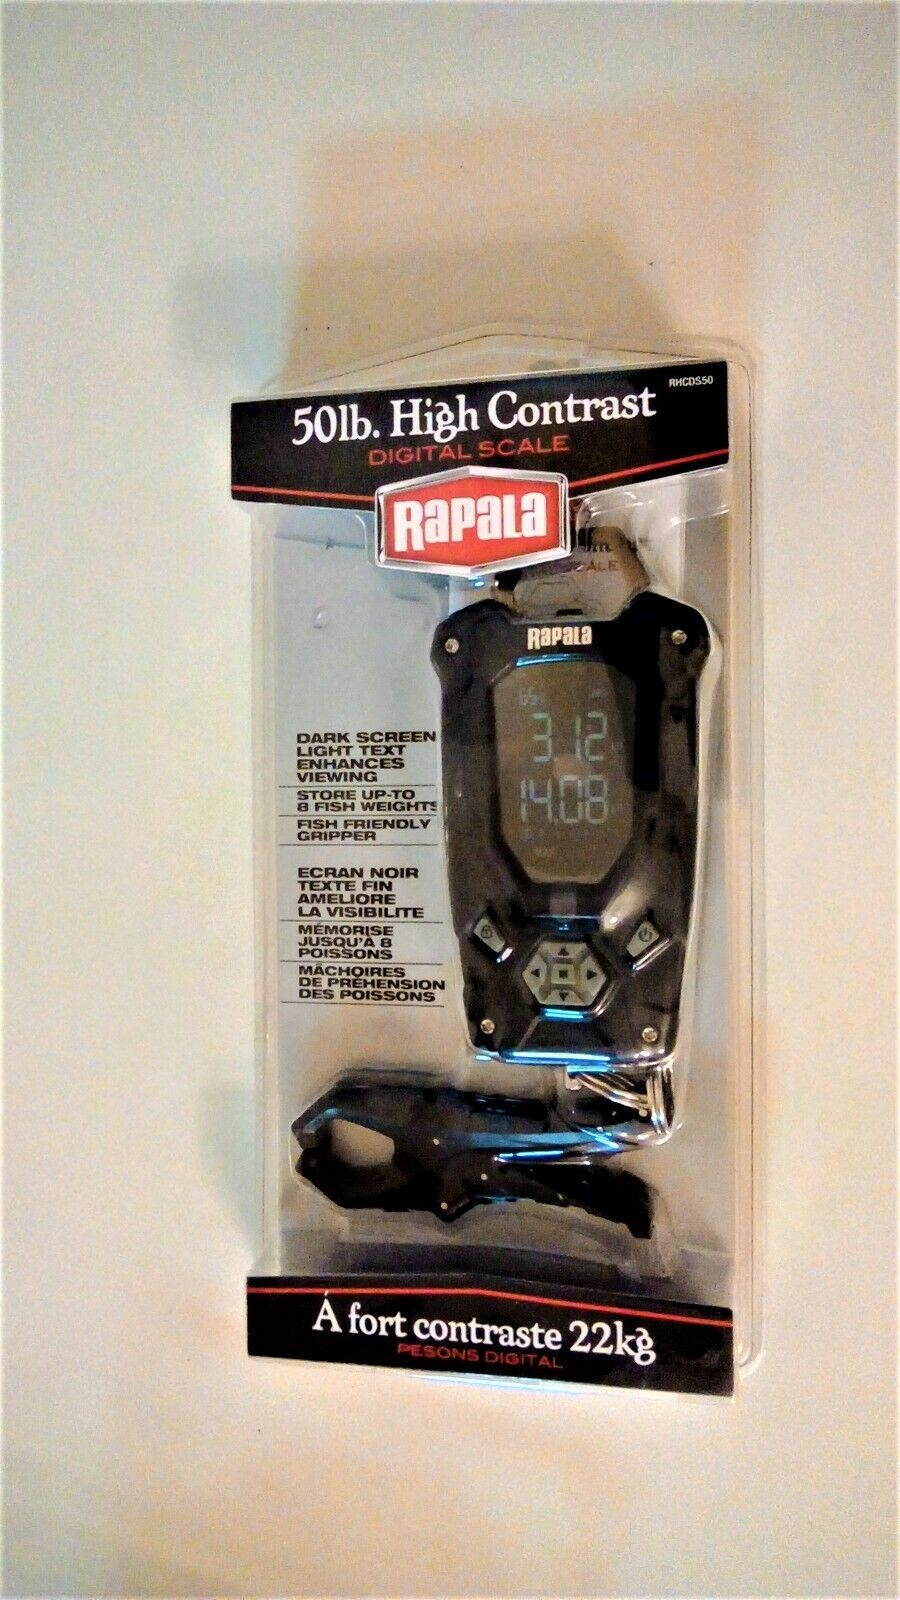 Rapala RHCDS50 High Contrast Digital Fish Scale Up To 50 Lbs. UPC 022677286037 - $22.50